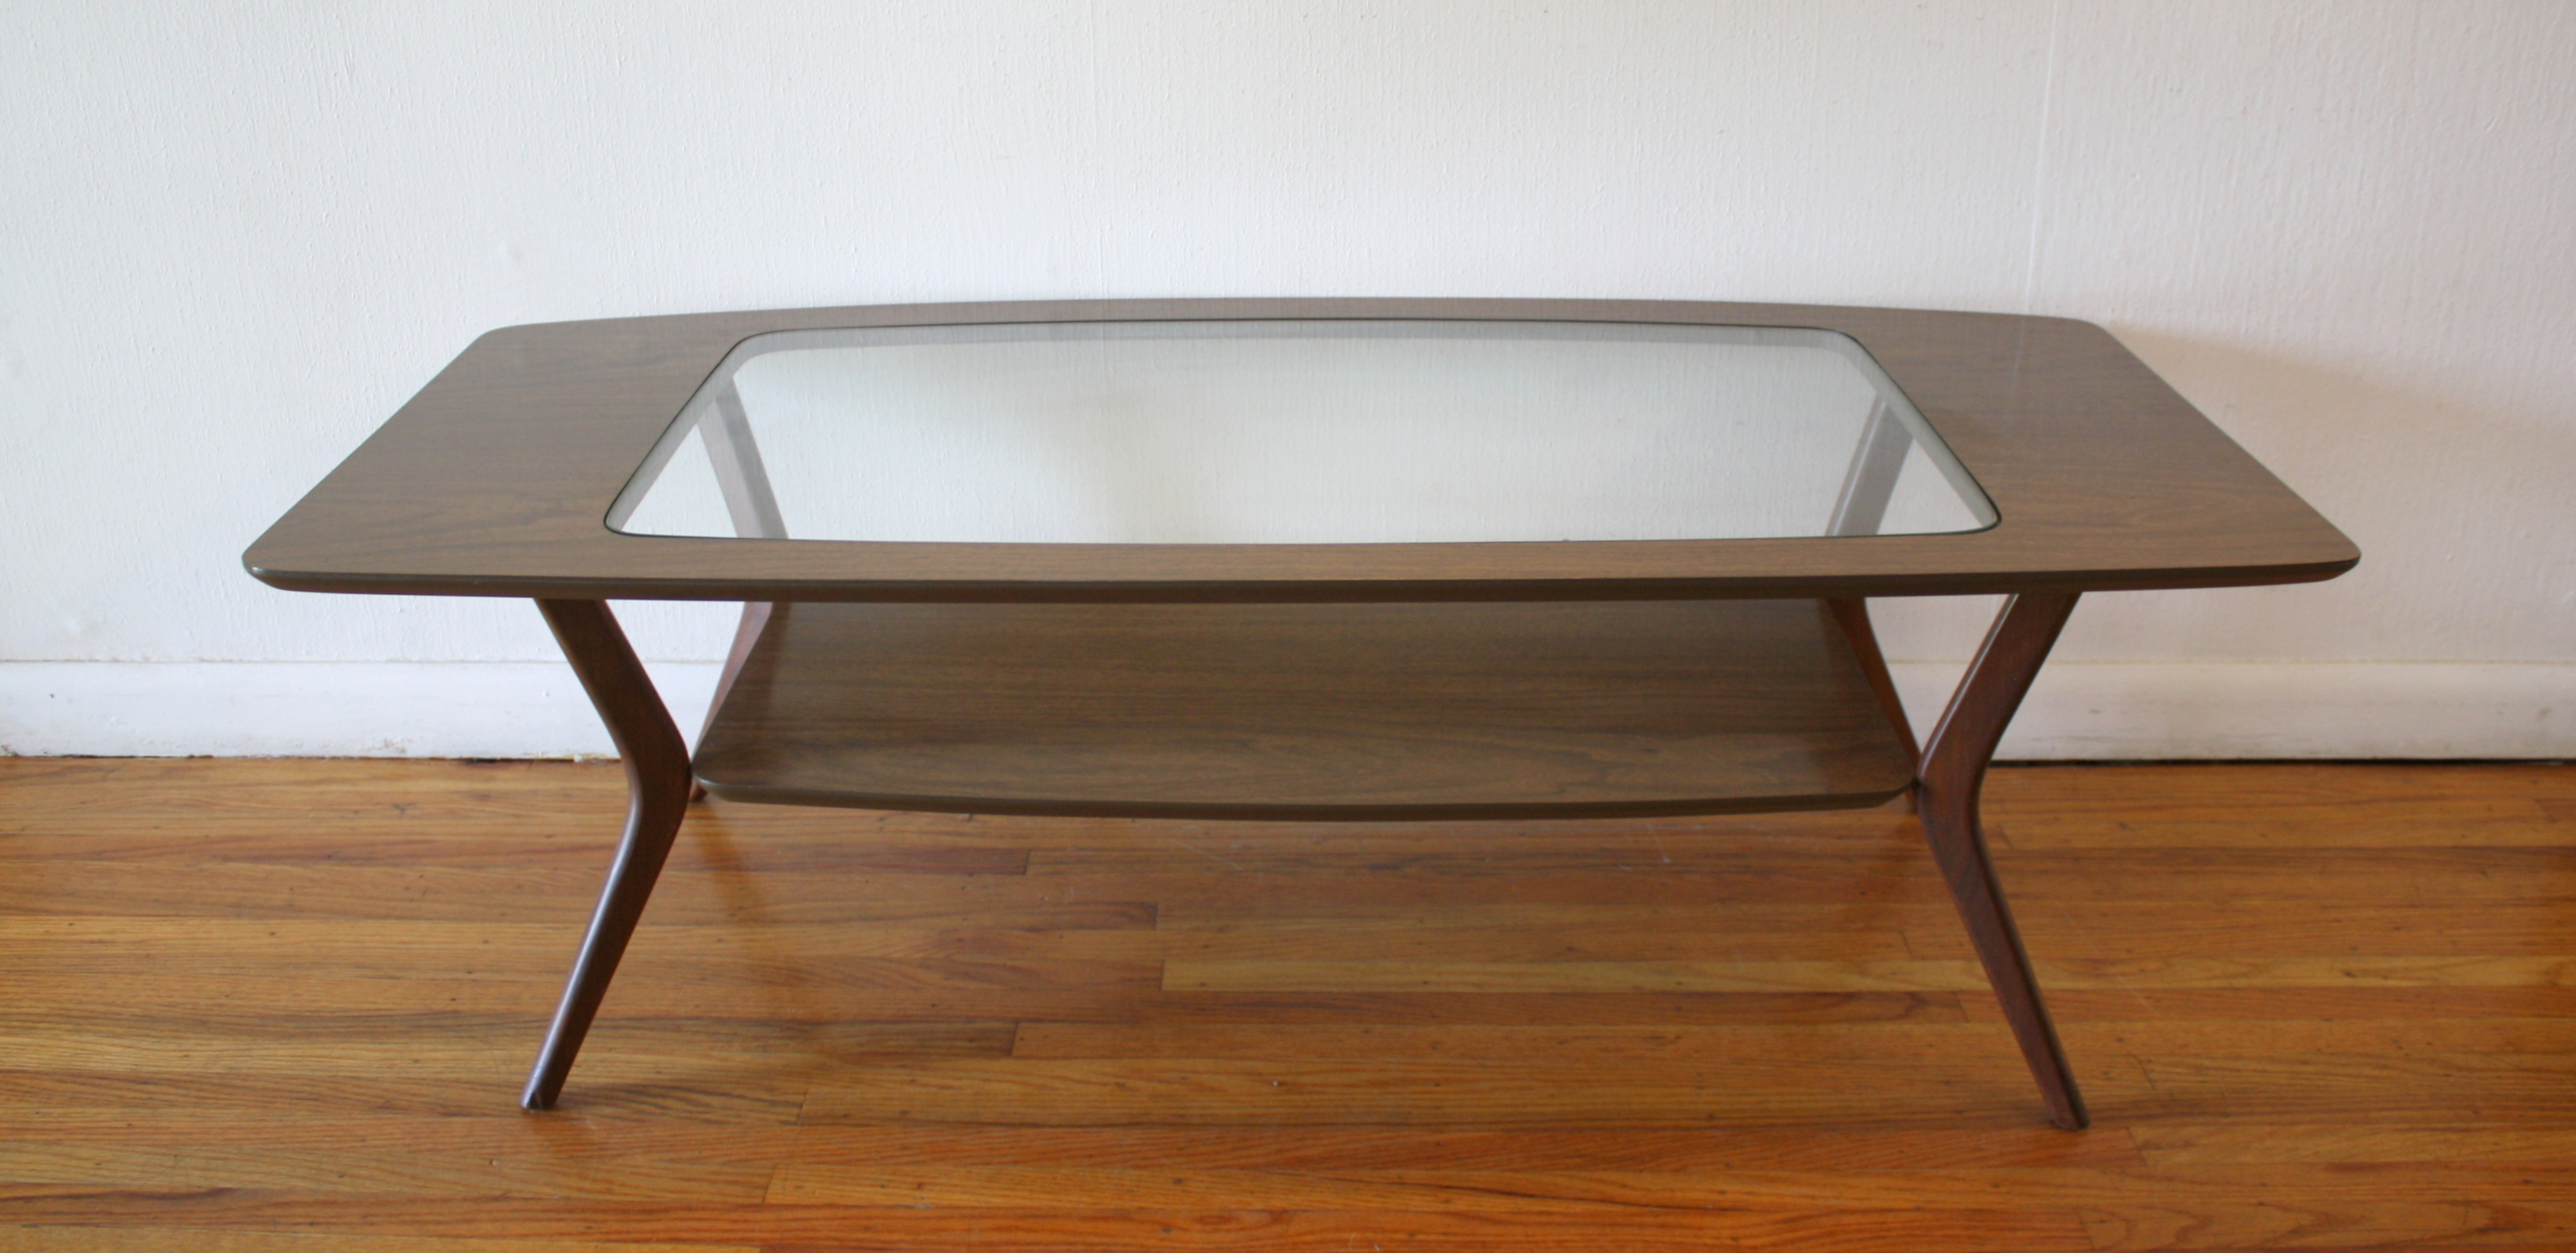 glass insert ked vintage mcm coffee table end with furniture row las cruces thomasville burlington ethan allen full length mirror sofa round tures tables behind couches camel